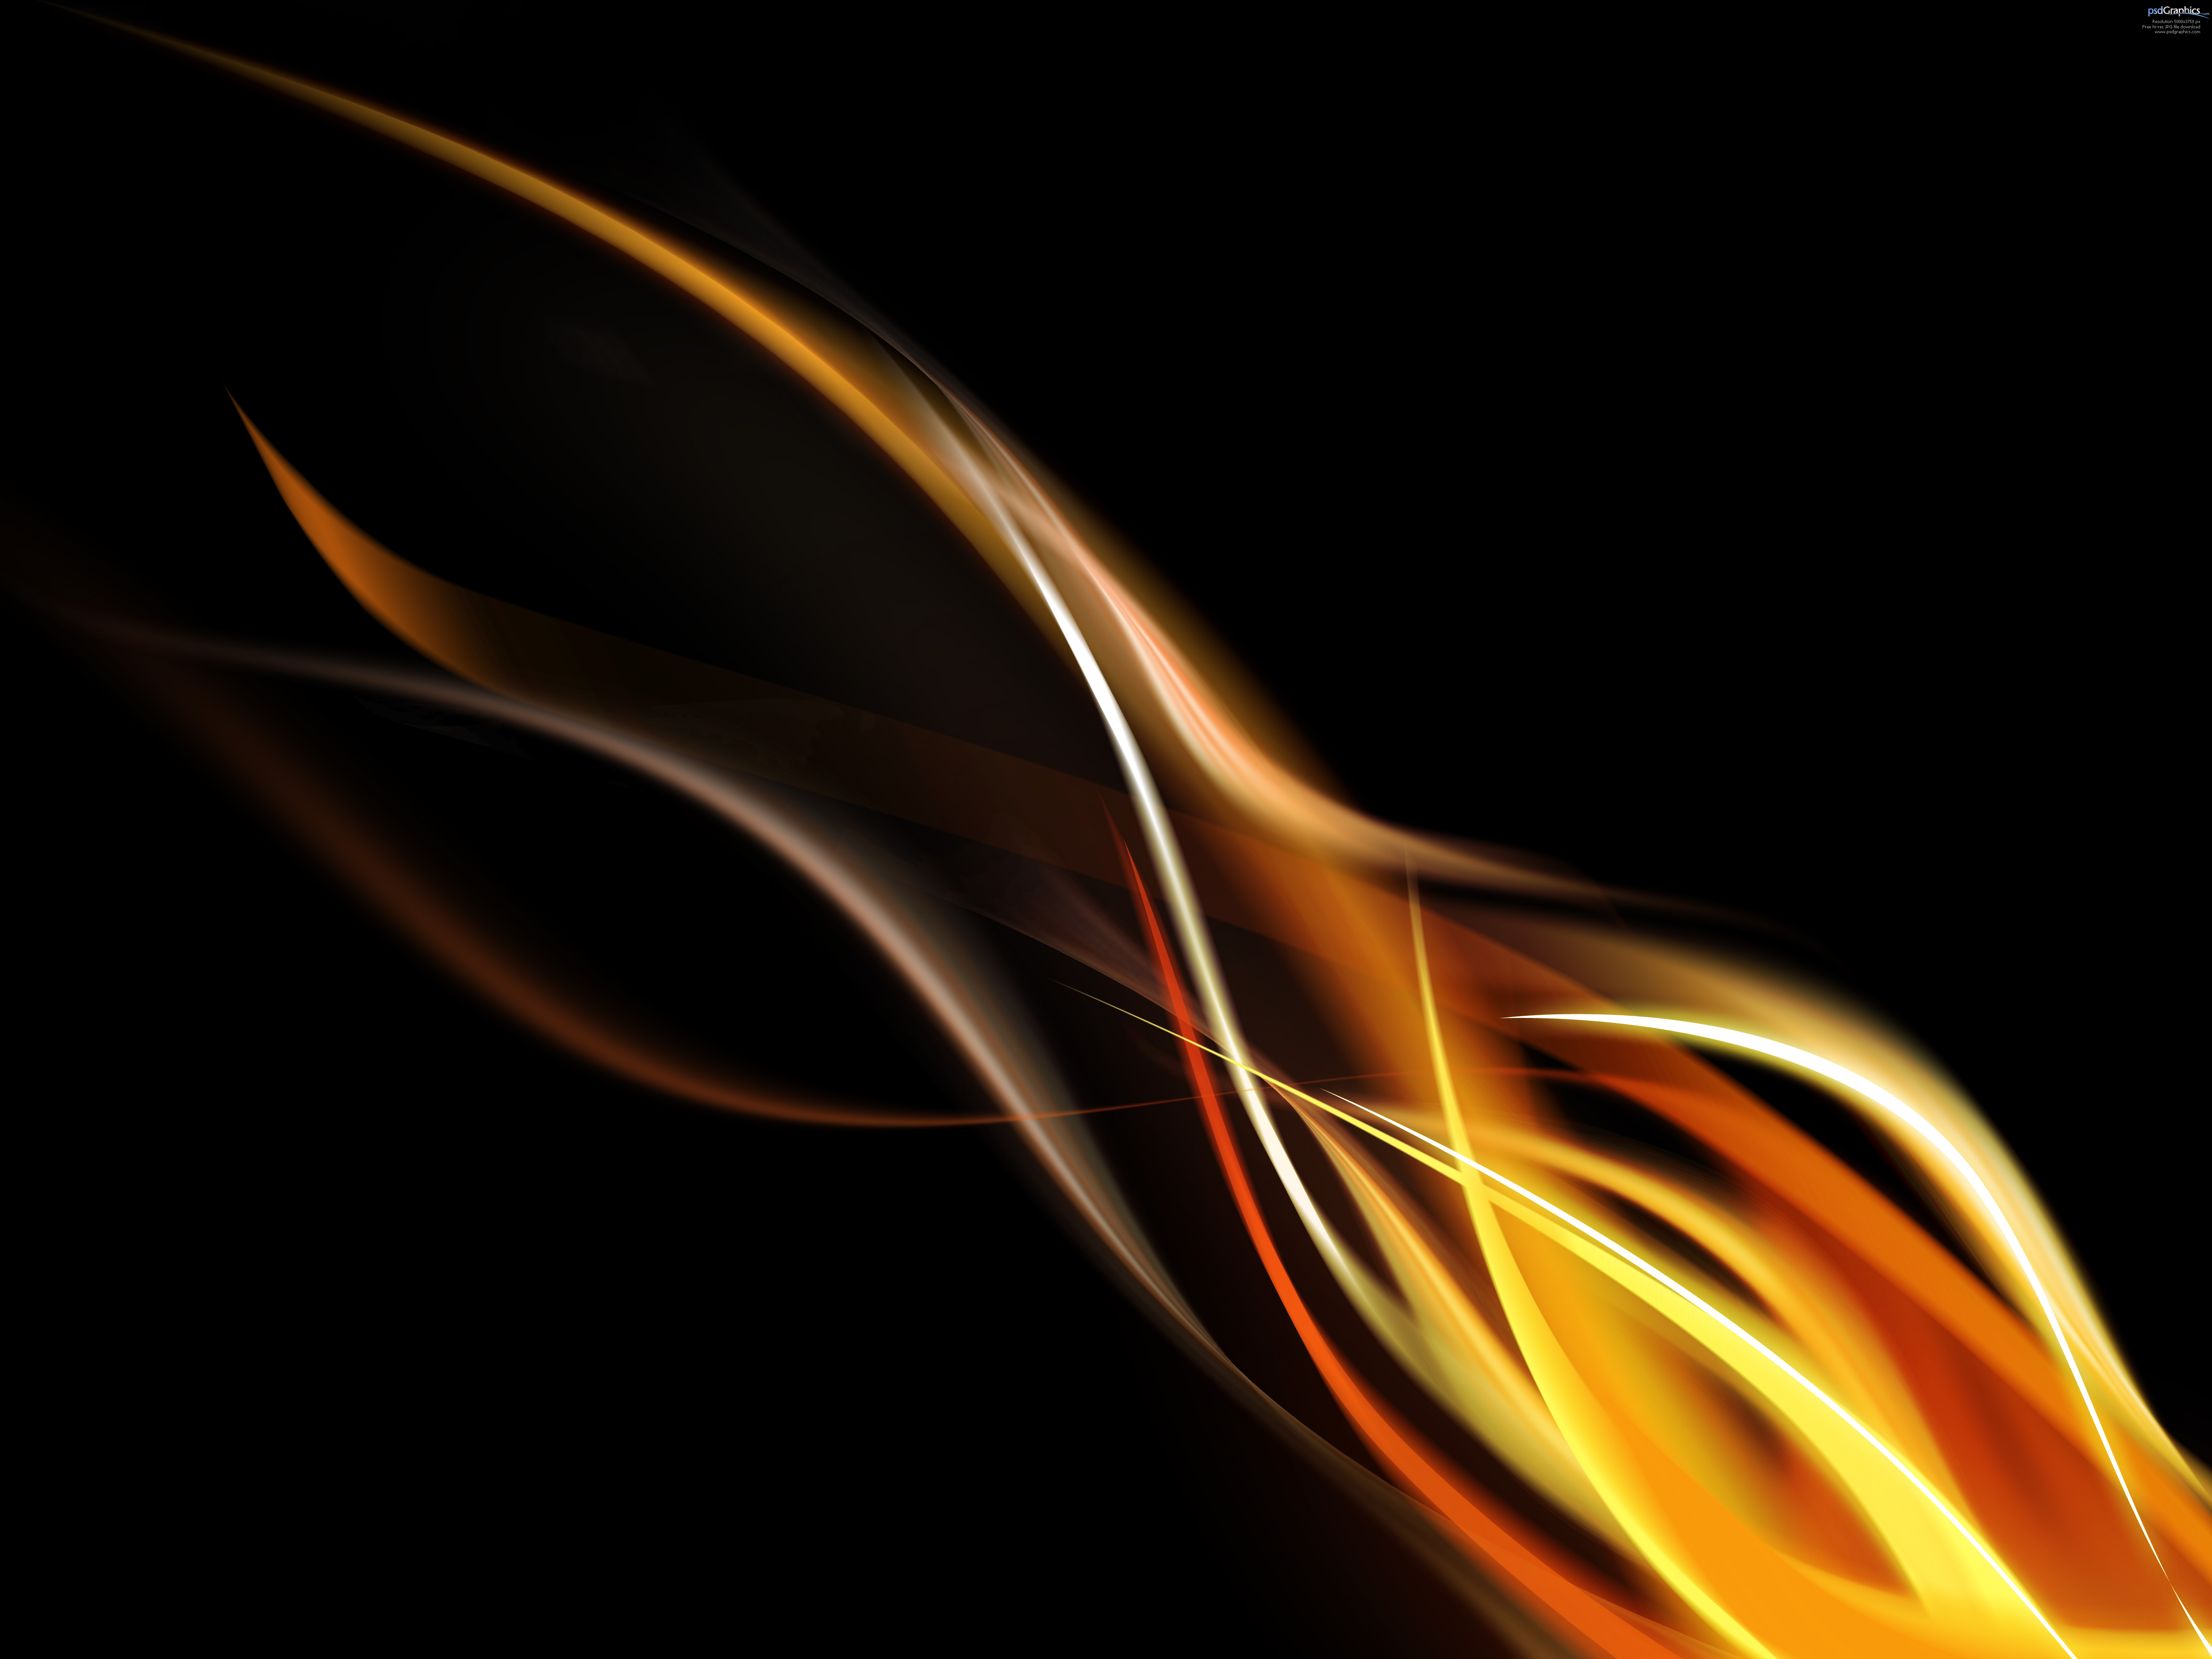 Photoshop flame background